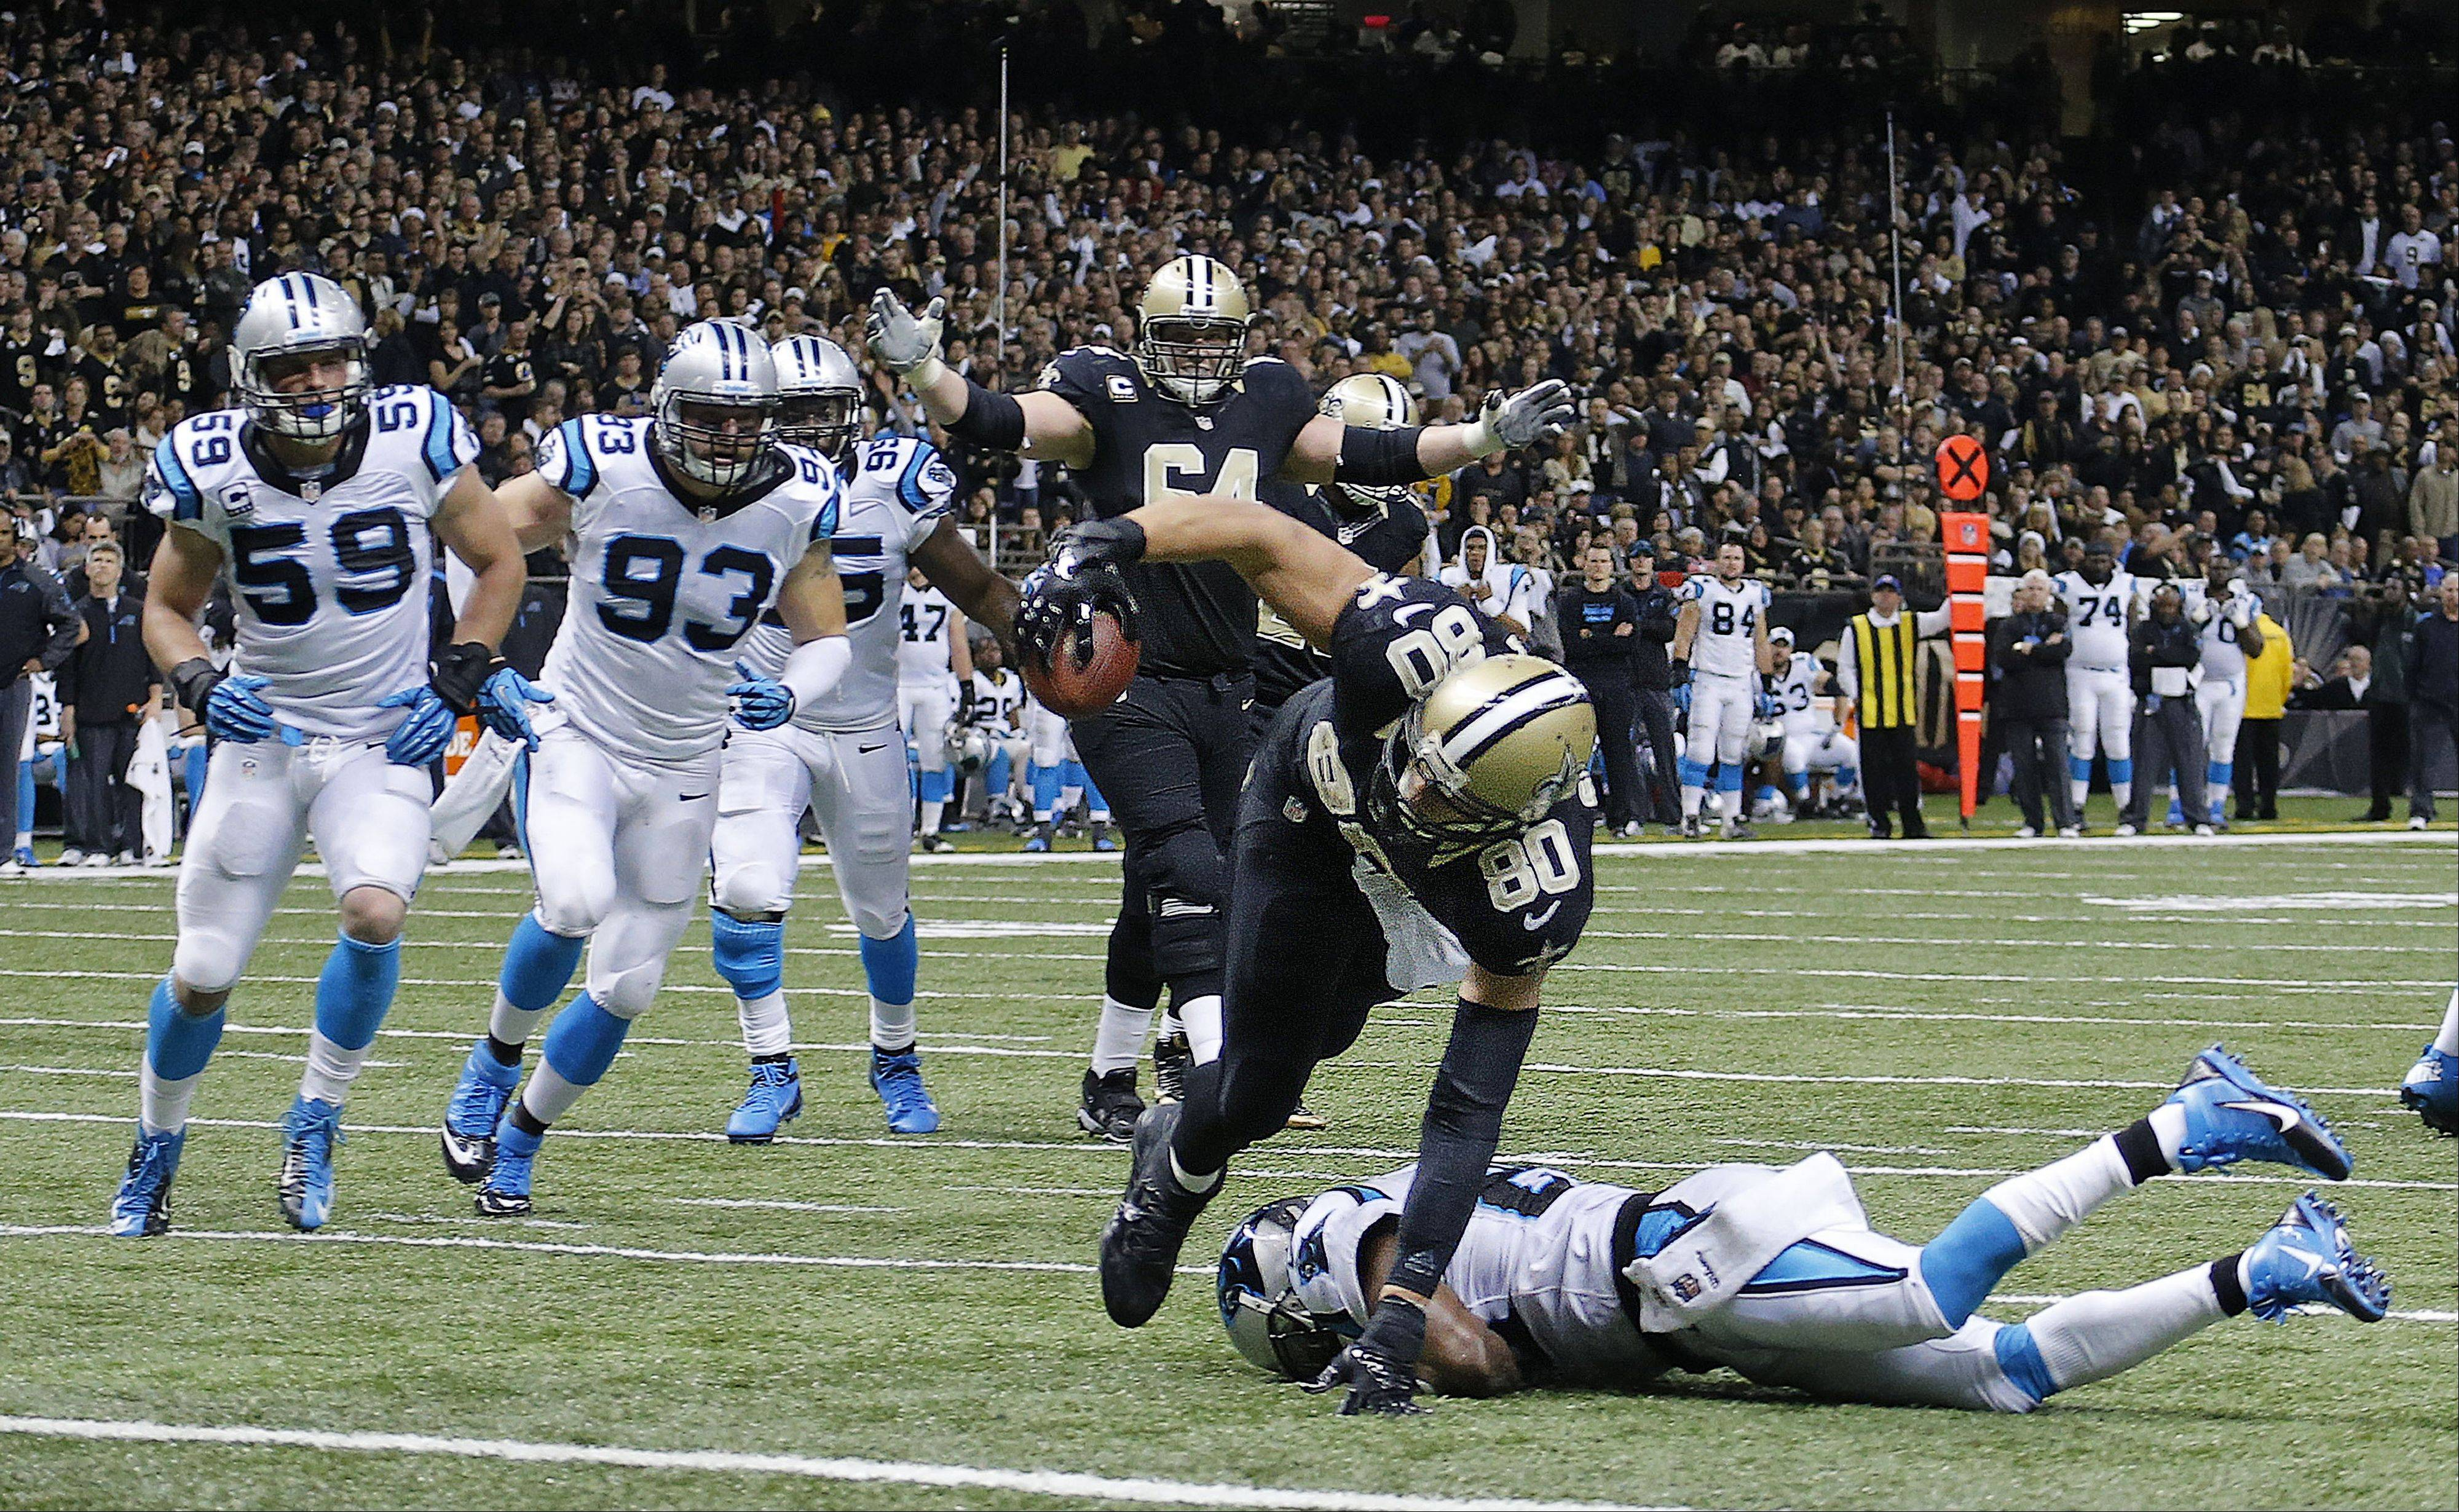 New Orleans Saints tight end Jimmy Graham (80) scores on a touchdown as Carolina Panthers cornerback Drayton Florence tries to tackle in the second half of an NFL football game in New Orleans, Sunday, Dec. 8, 2013.